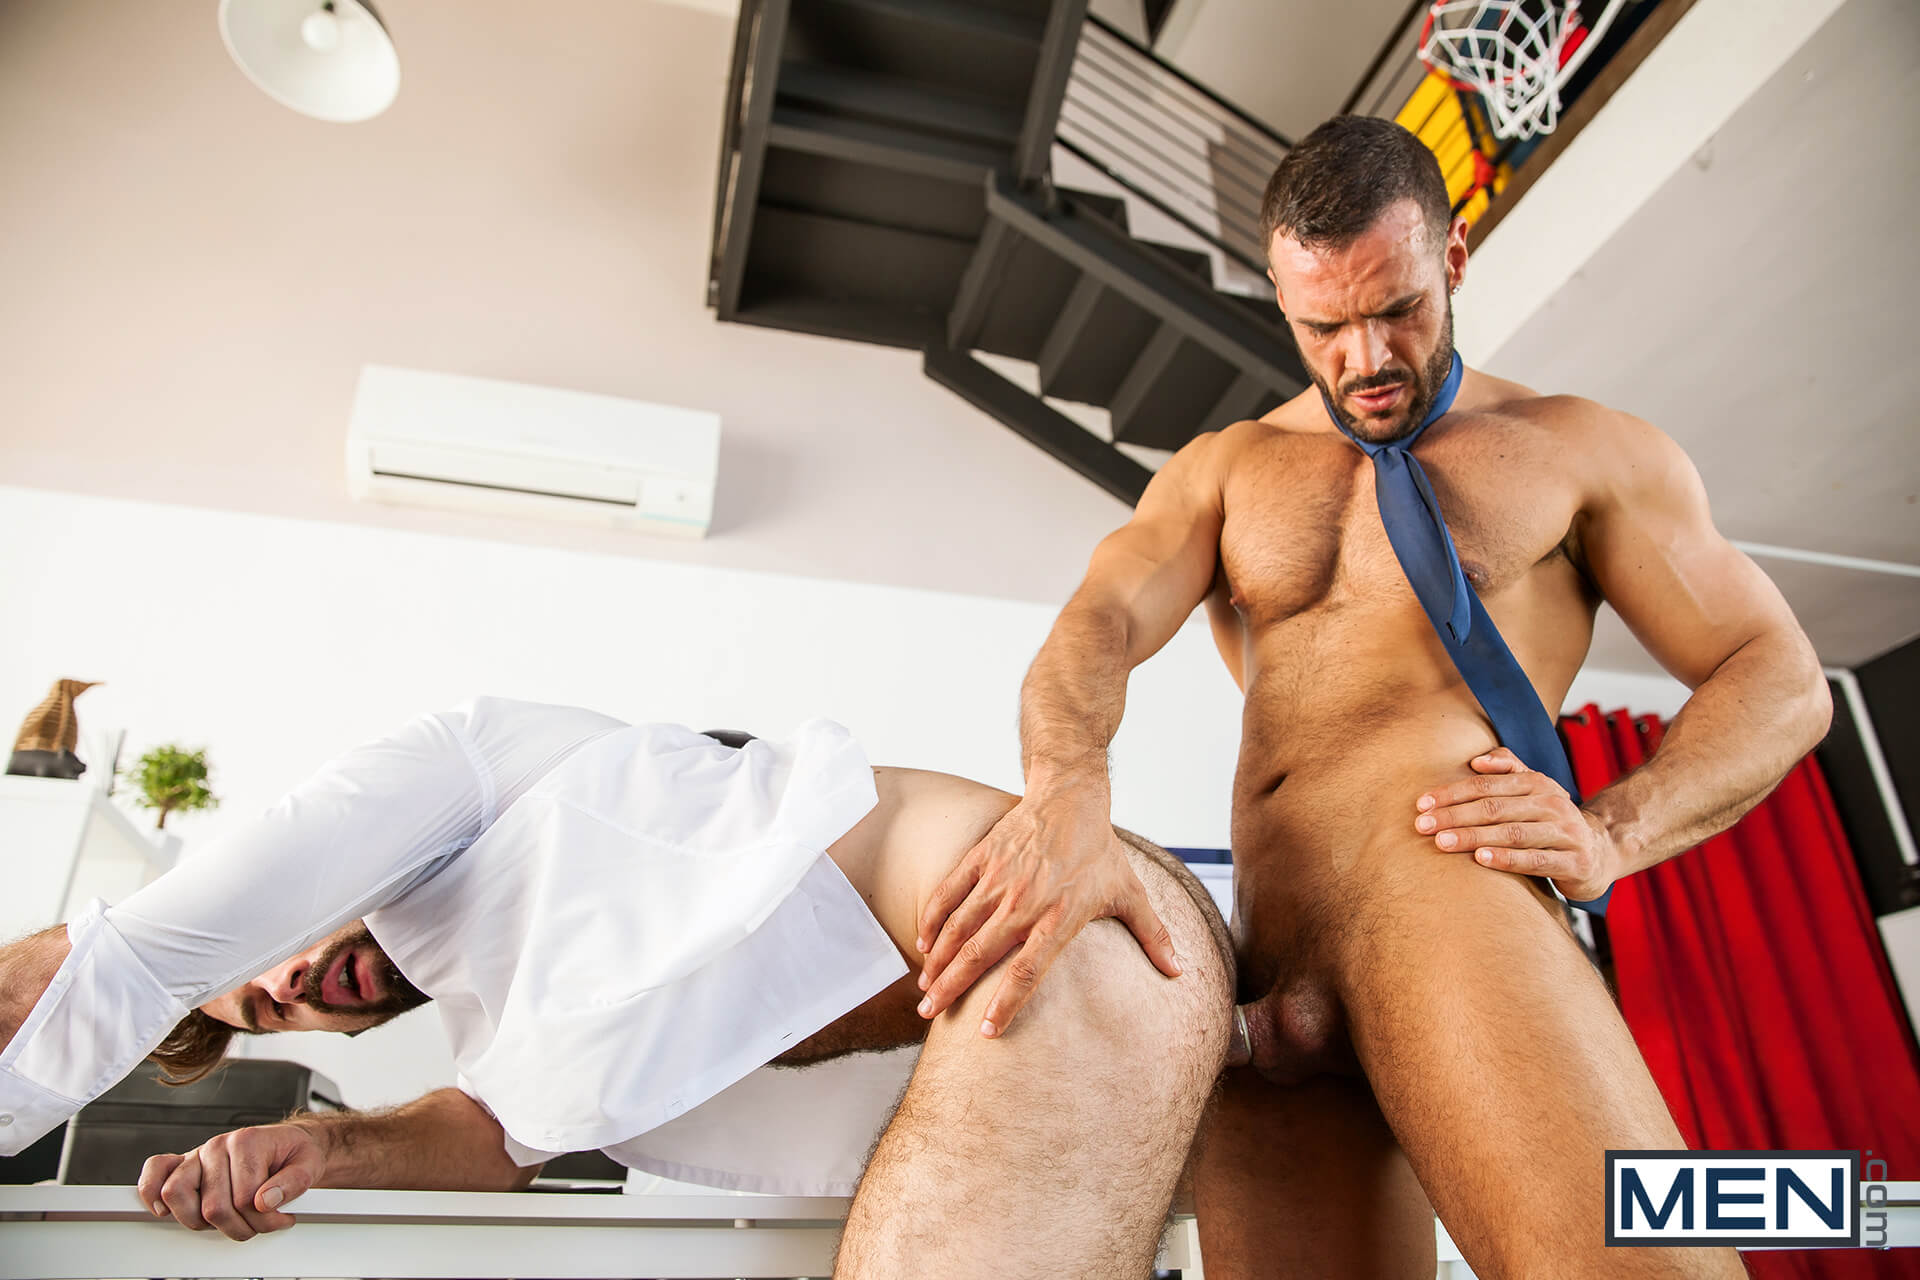 men the gay office find the mole part 1 dakota vice denis vega gay porn blog image 13